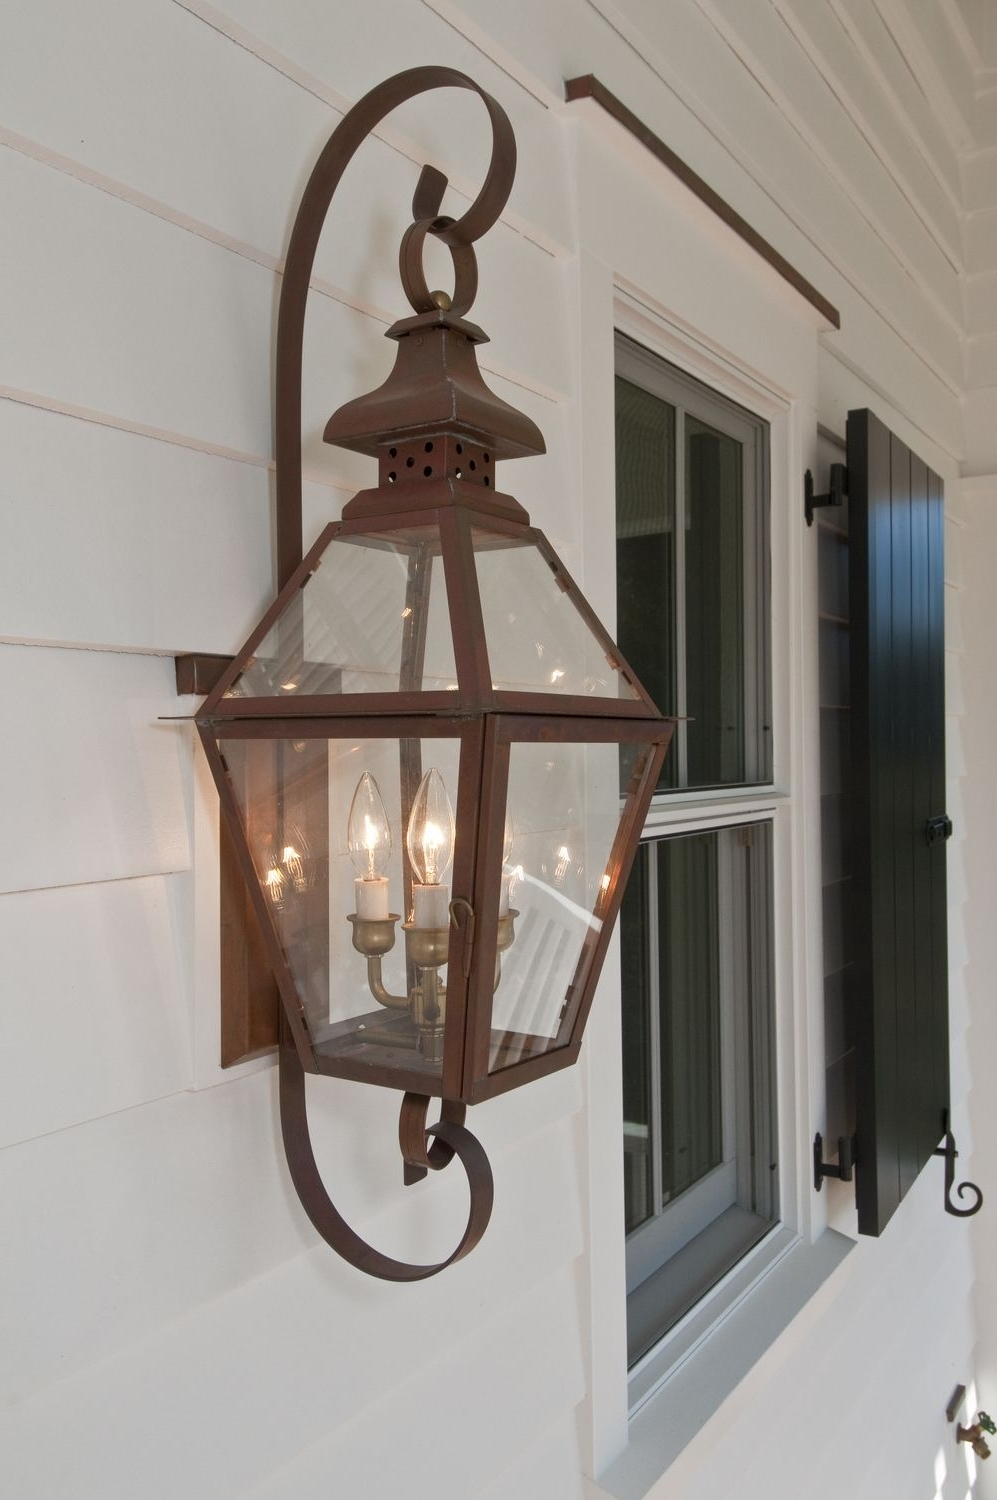 Outdoor Electric Lanterns In Favorite The Tradd Street Ii Lantern — Gas Or Electric (View 3 of 20)